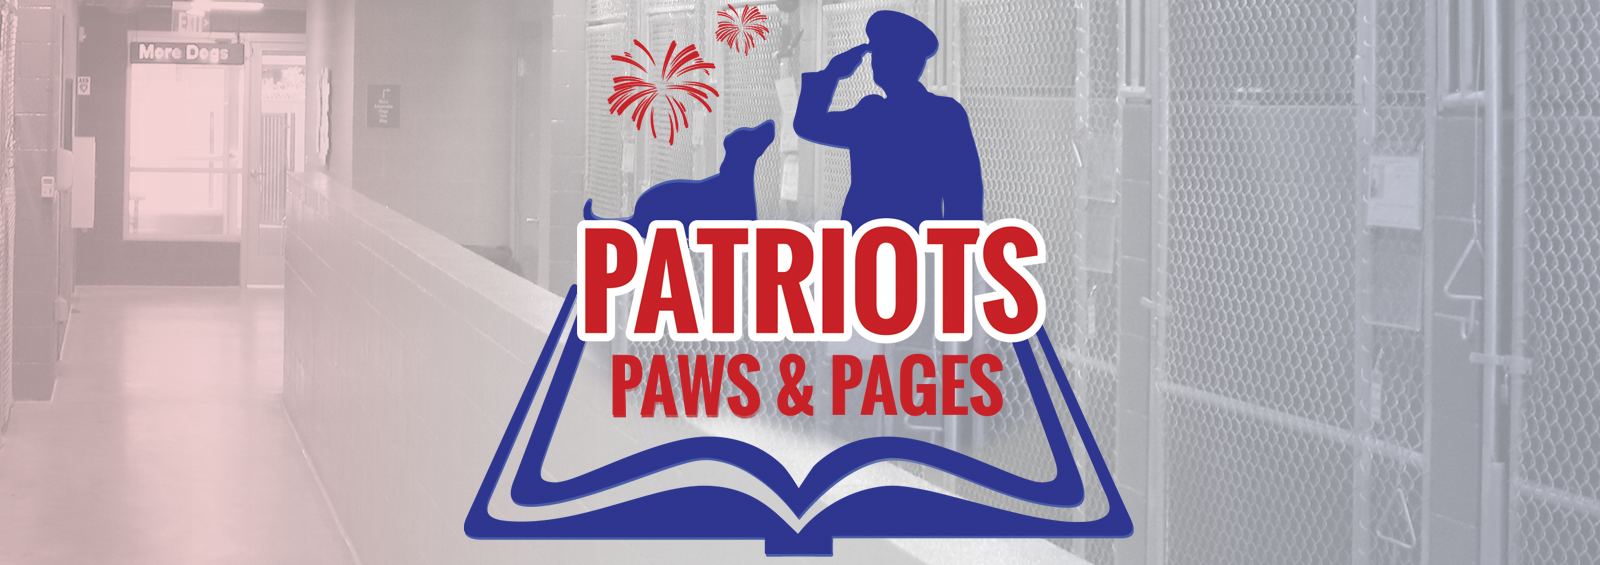 Patriots Paws and Pages